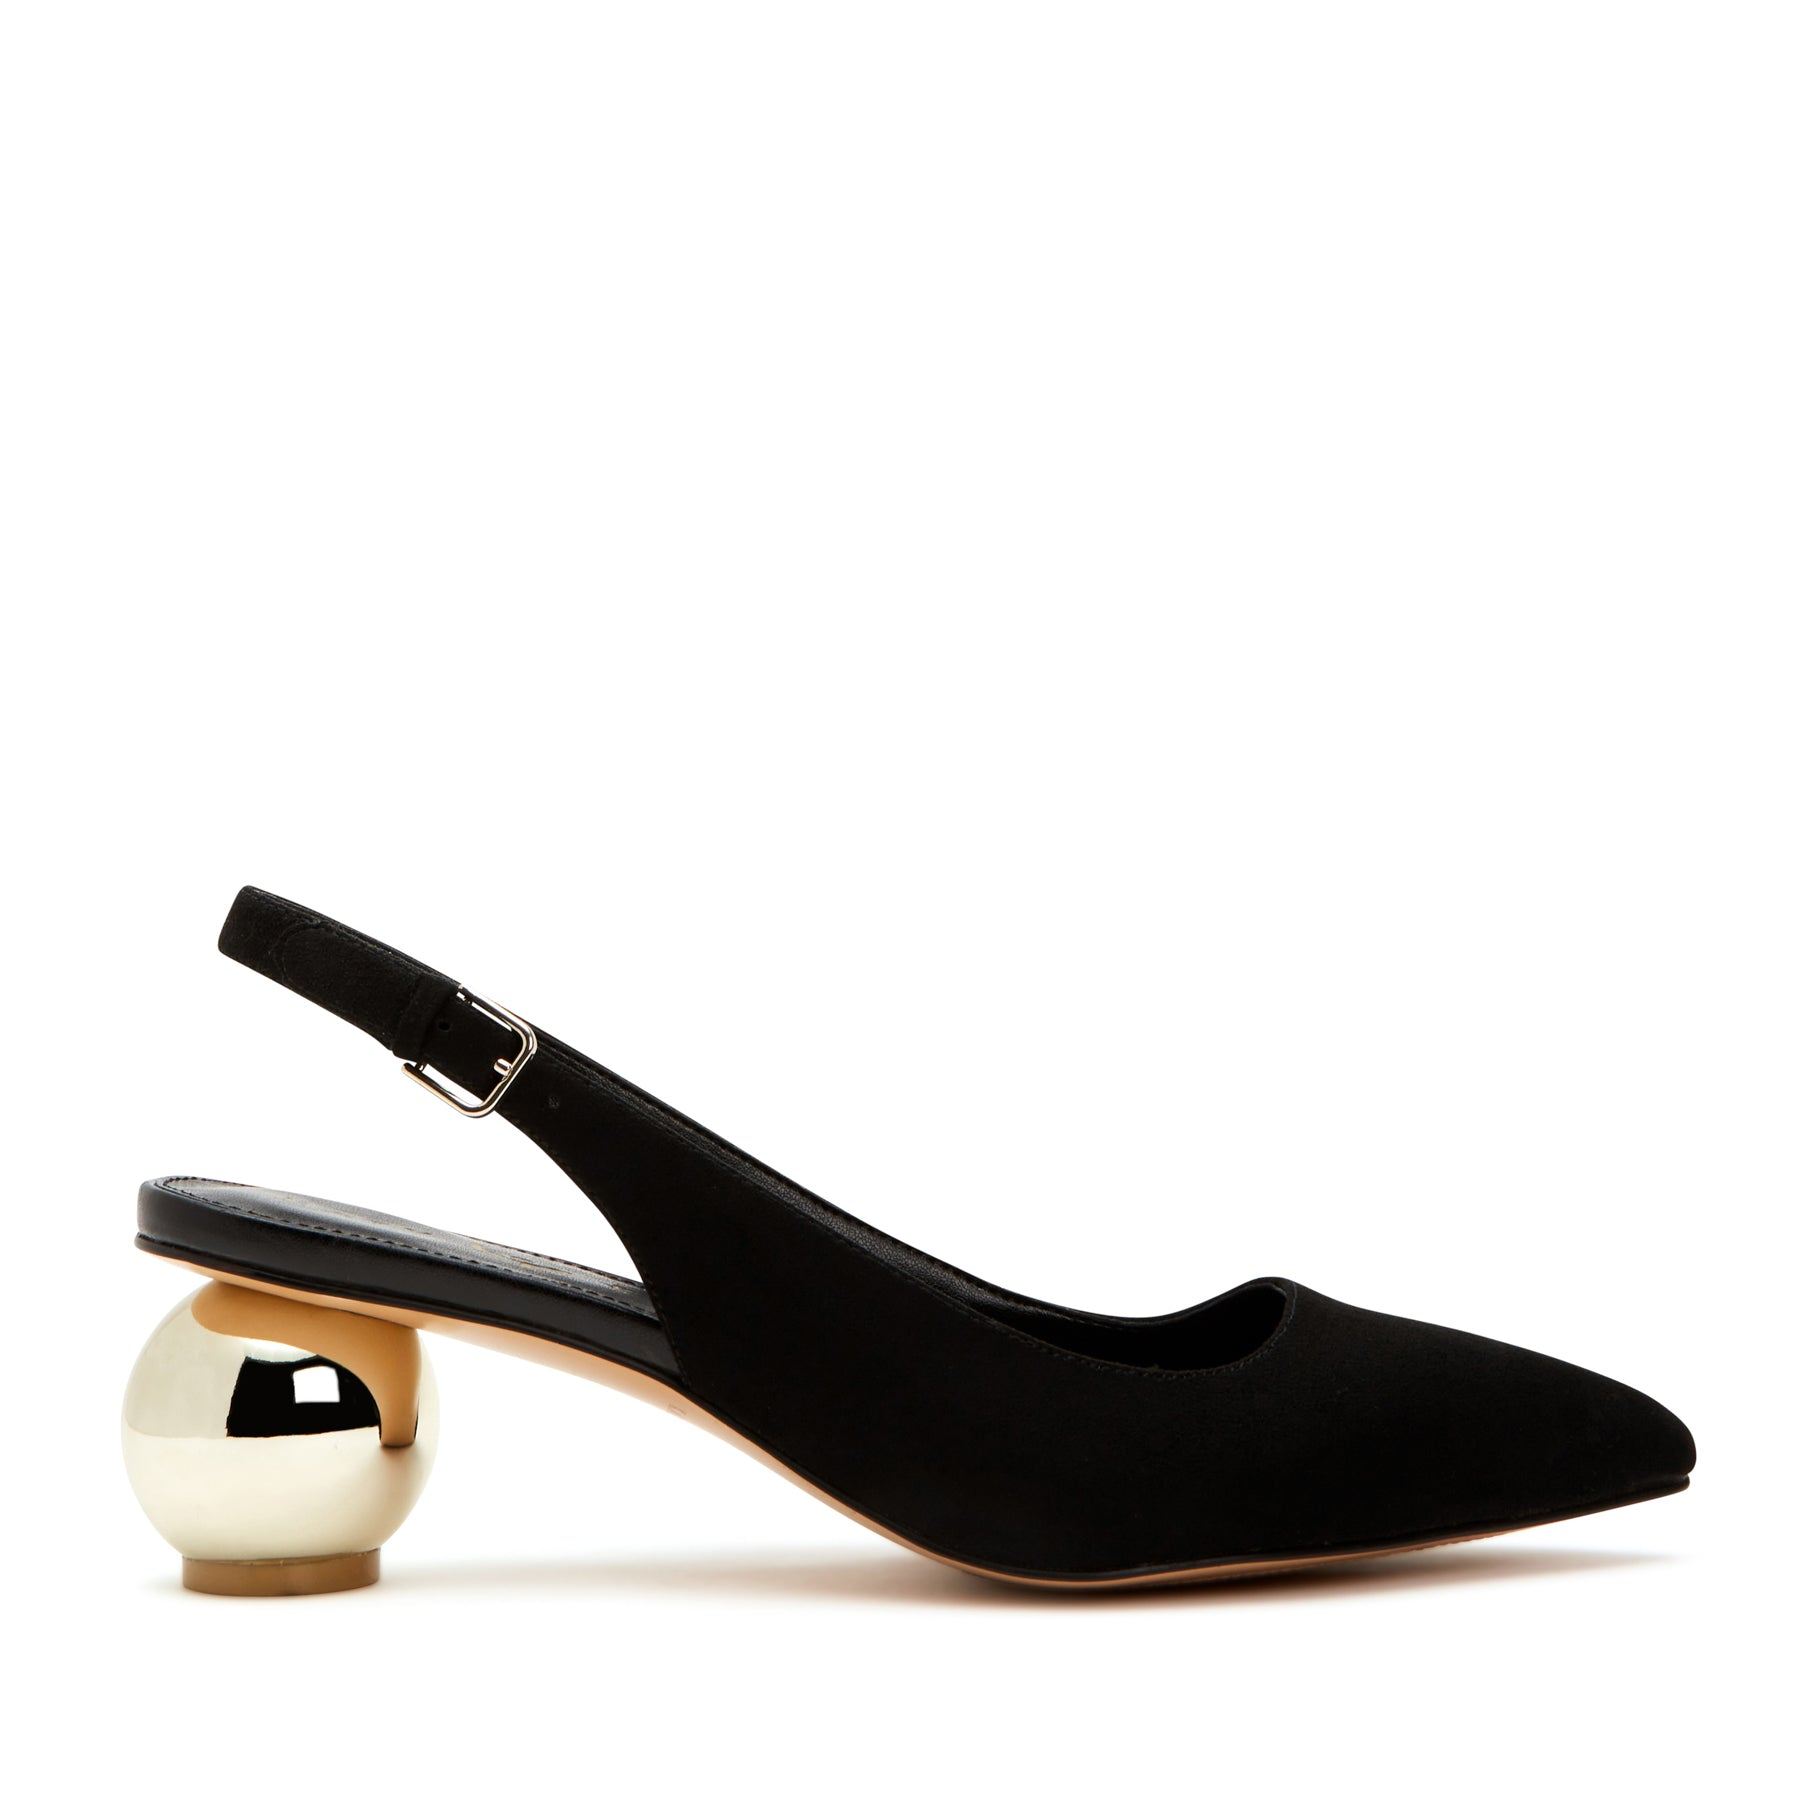 katy perry strappy pumps in black size 5   the adora